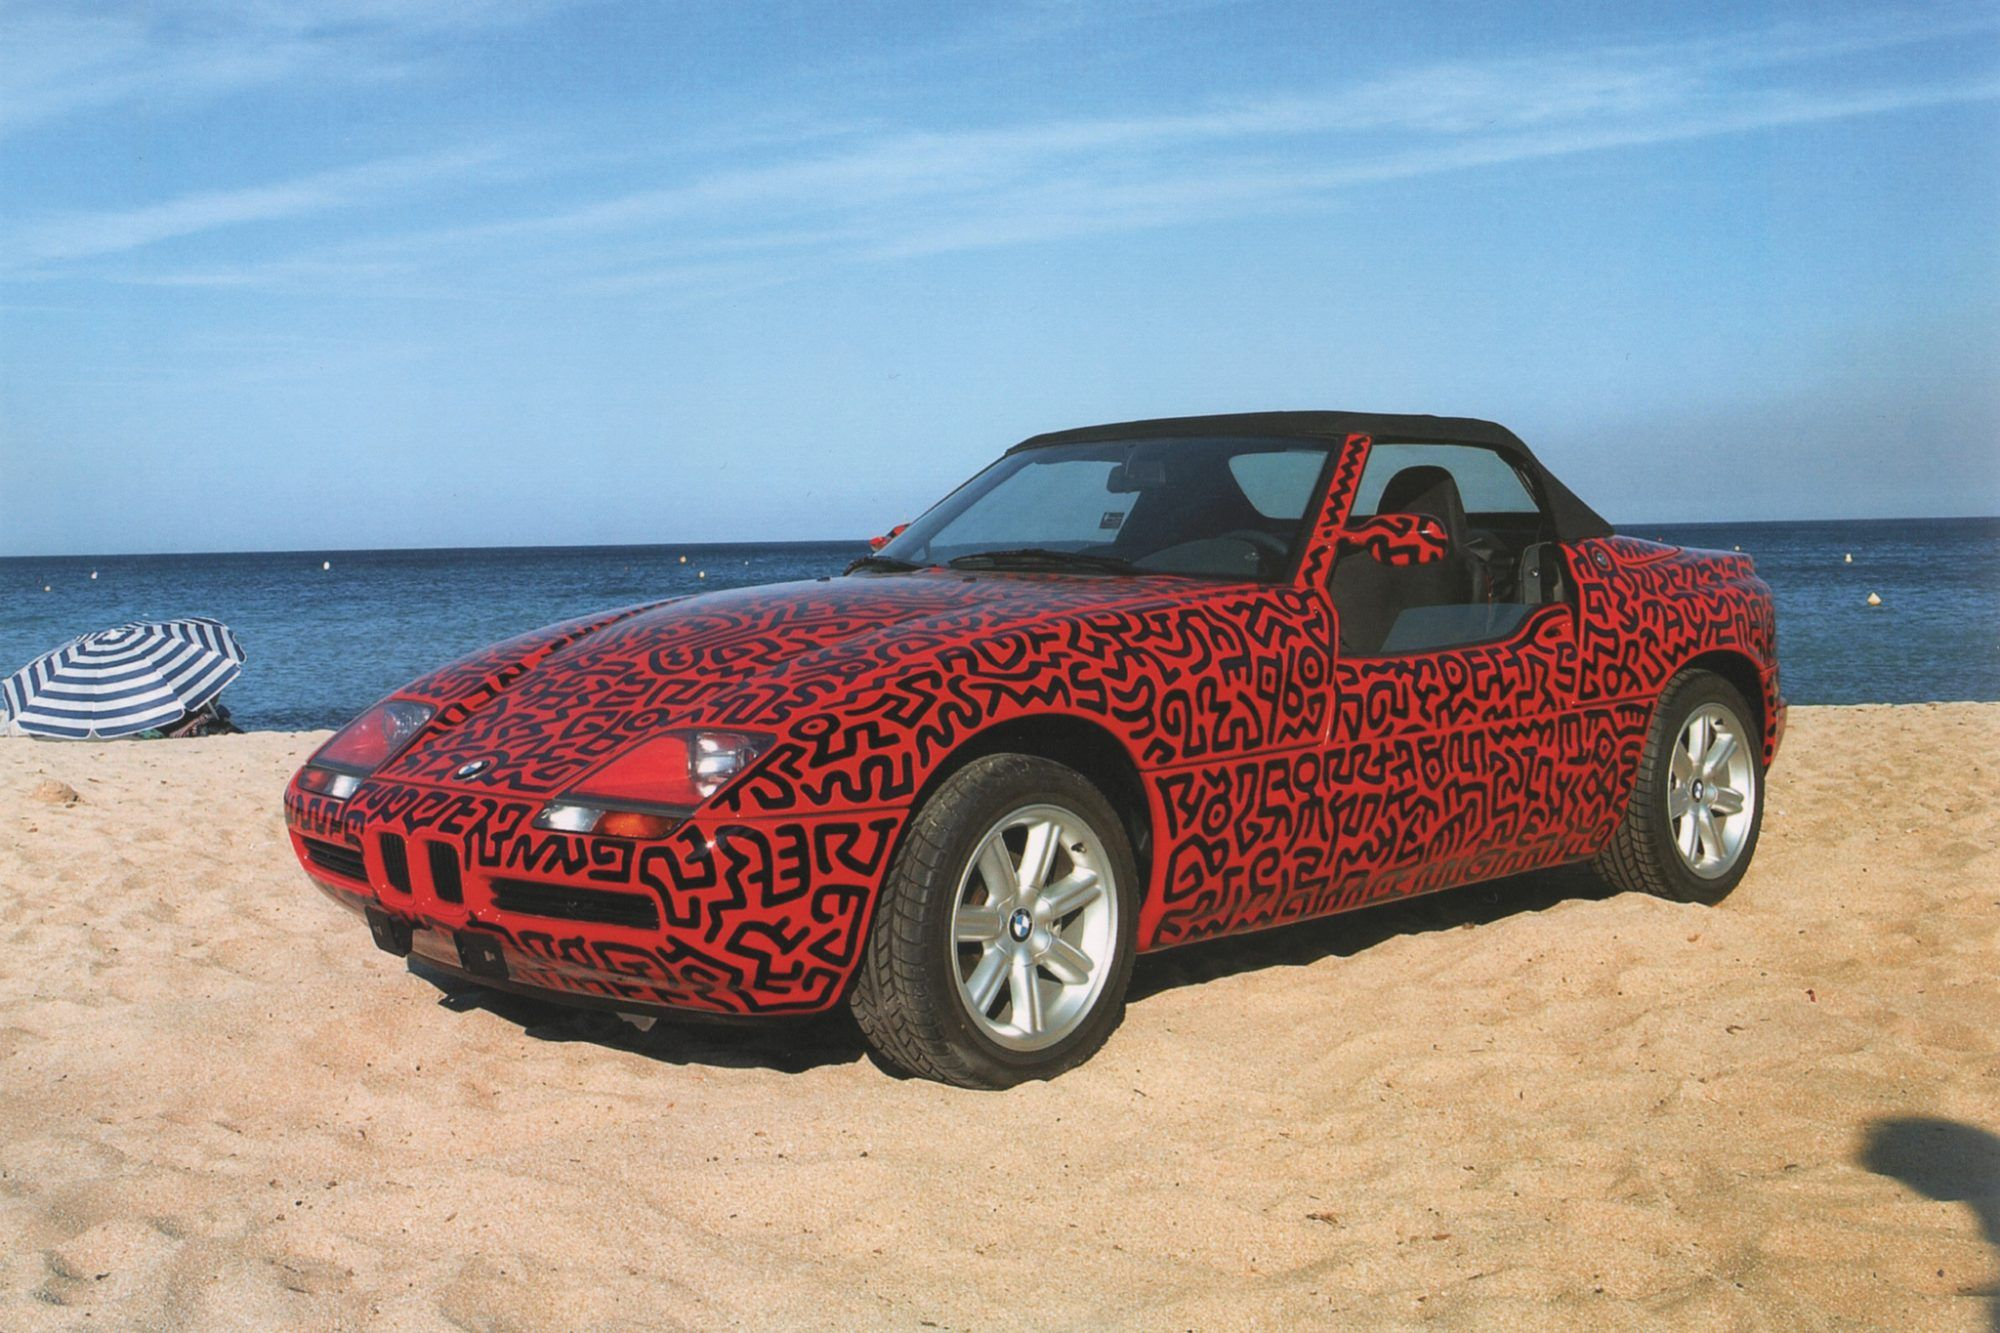 Keith Haring's Automotive Canvasses Are Coming To The